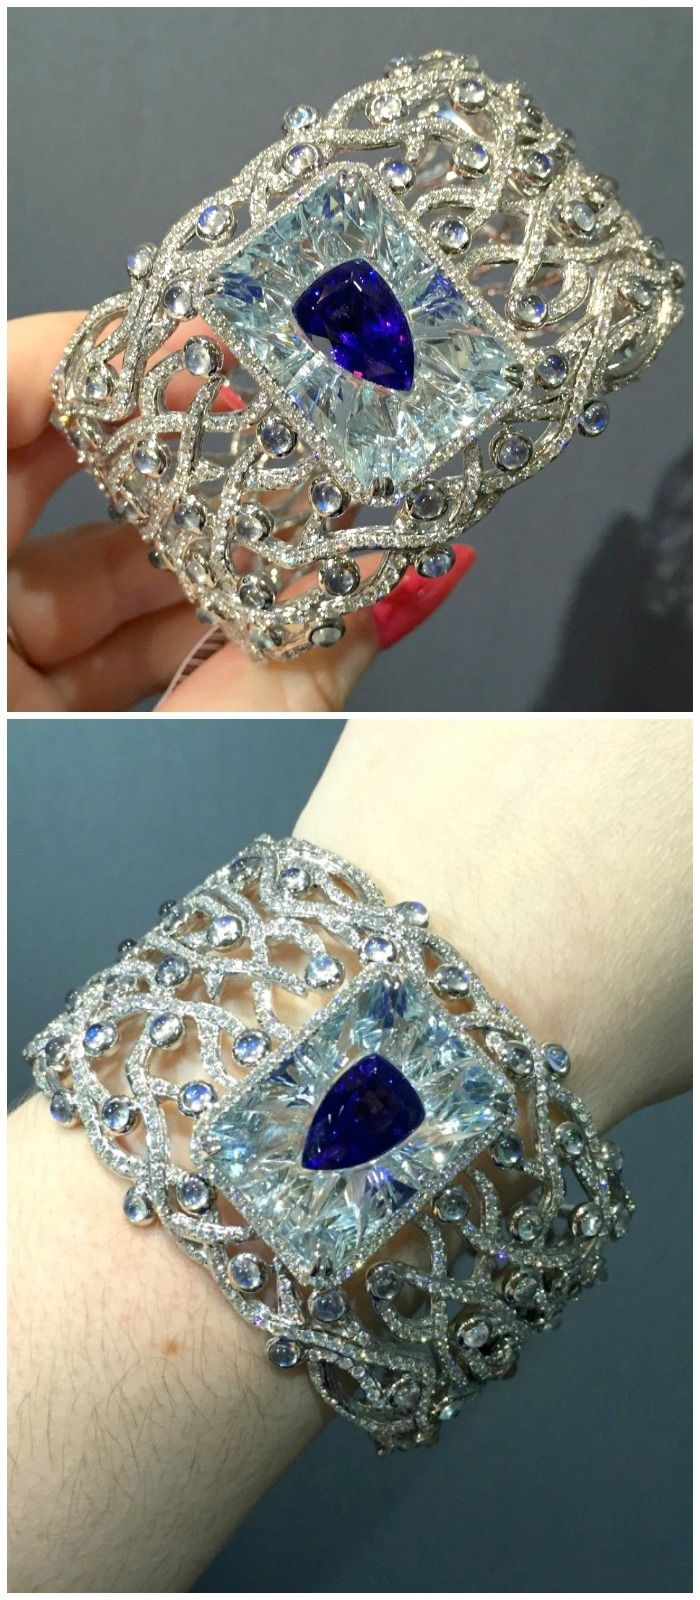 This Yael Designs bangle features a 7 carat tanzanite invisibly set inside a 26 carat aquamarine - with moonstones and diamonds on top of that. Incredible.